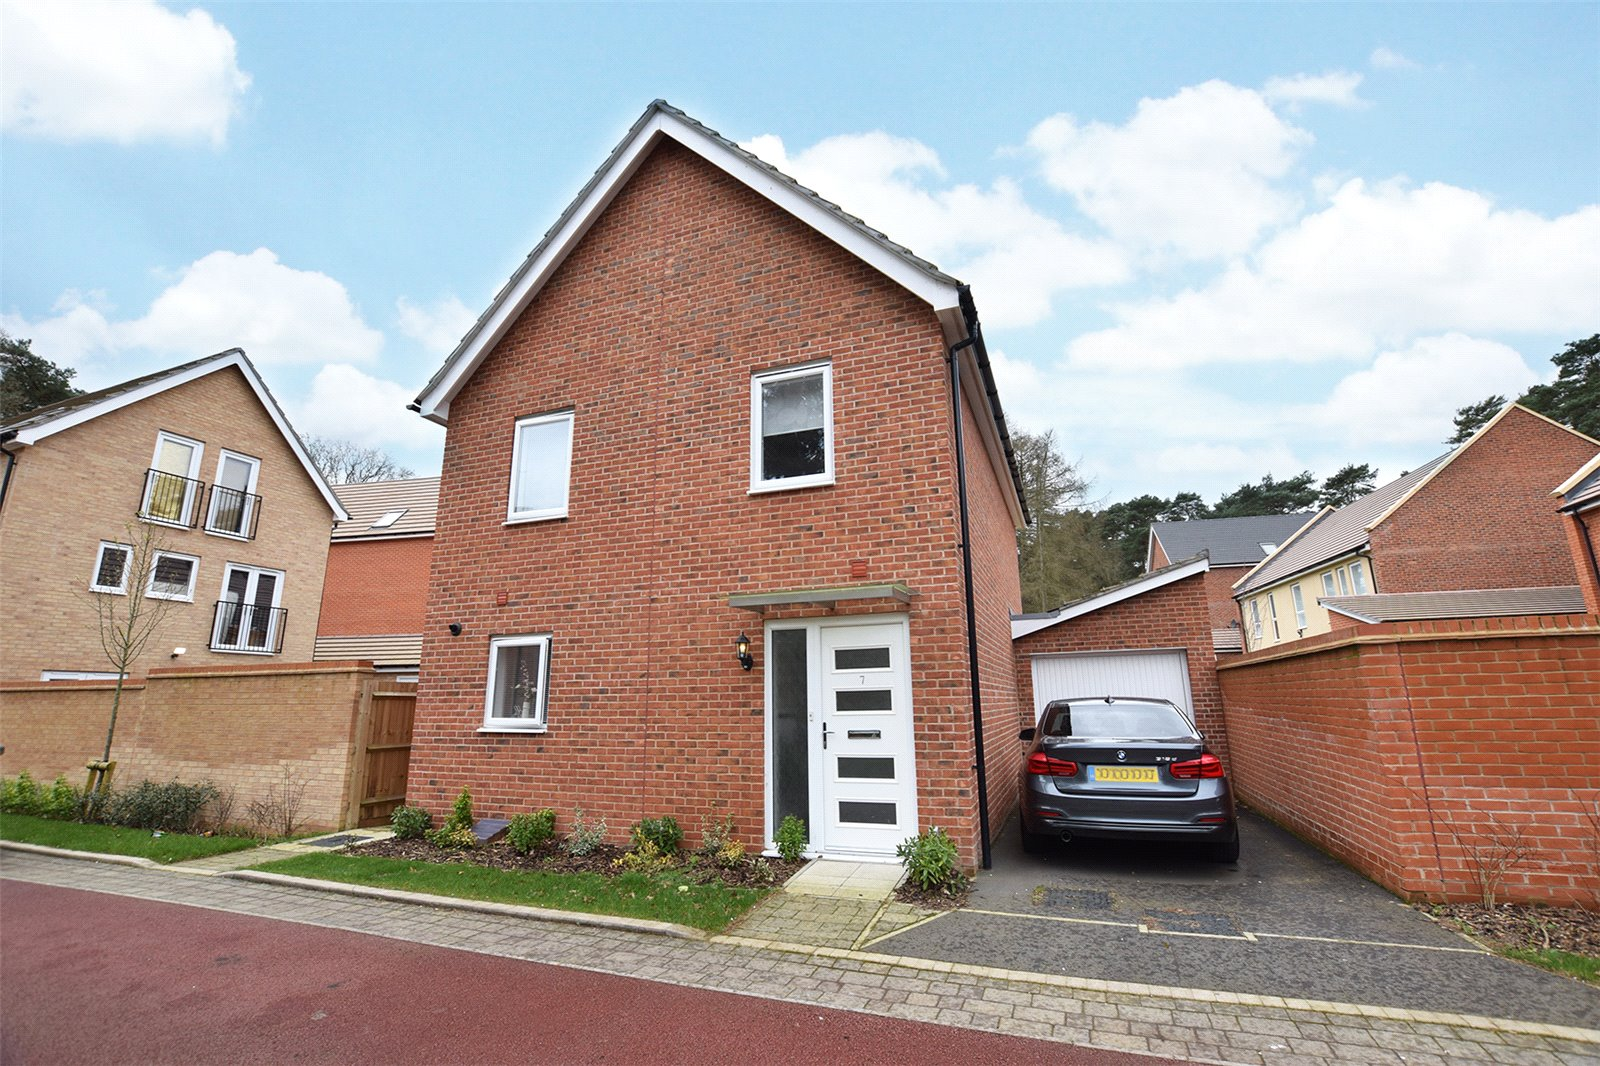 3 Bedrooms Detached House for sale in Hurricane Gate, Bracknell, Berkshire, RG12